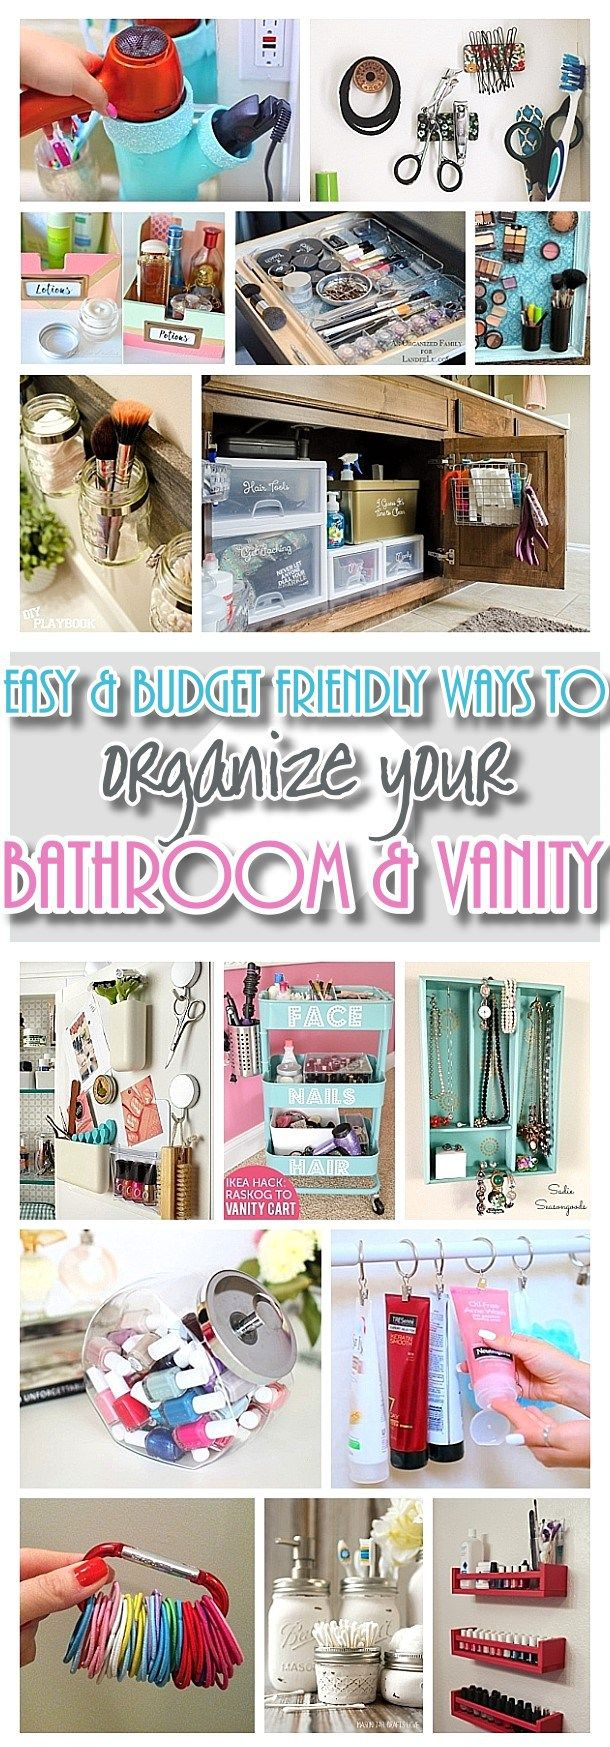 inexpensive do it yourself ways to organize and decorate your bathroom